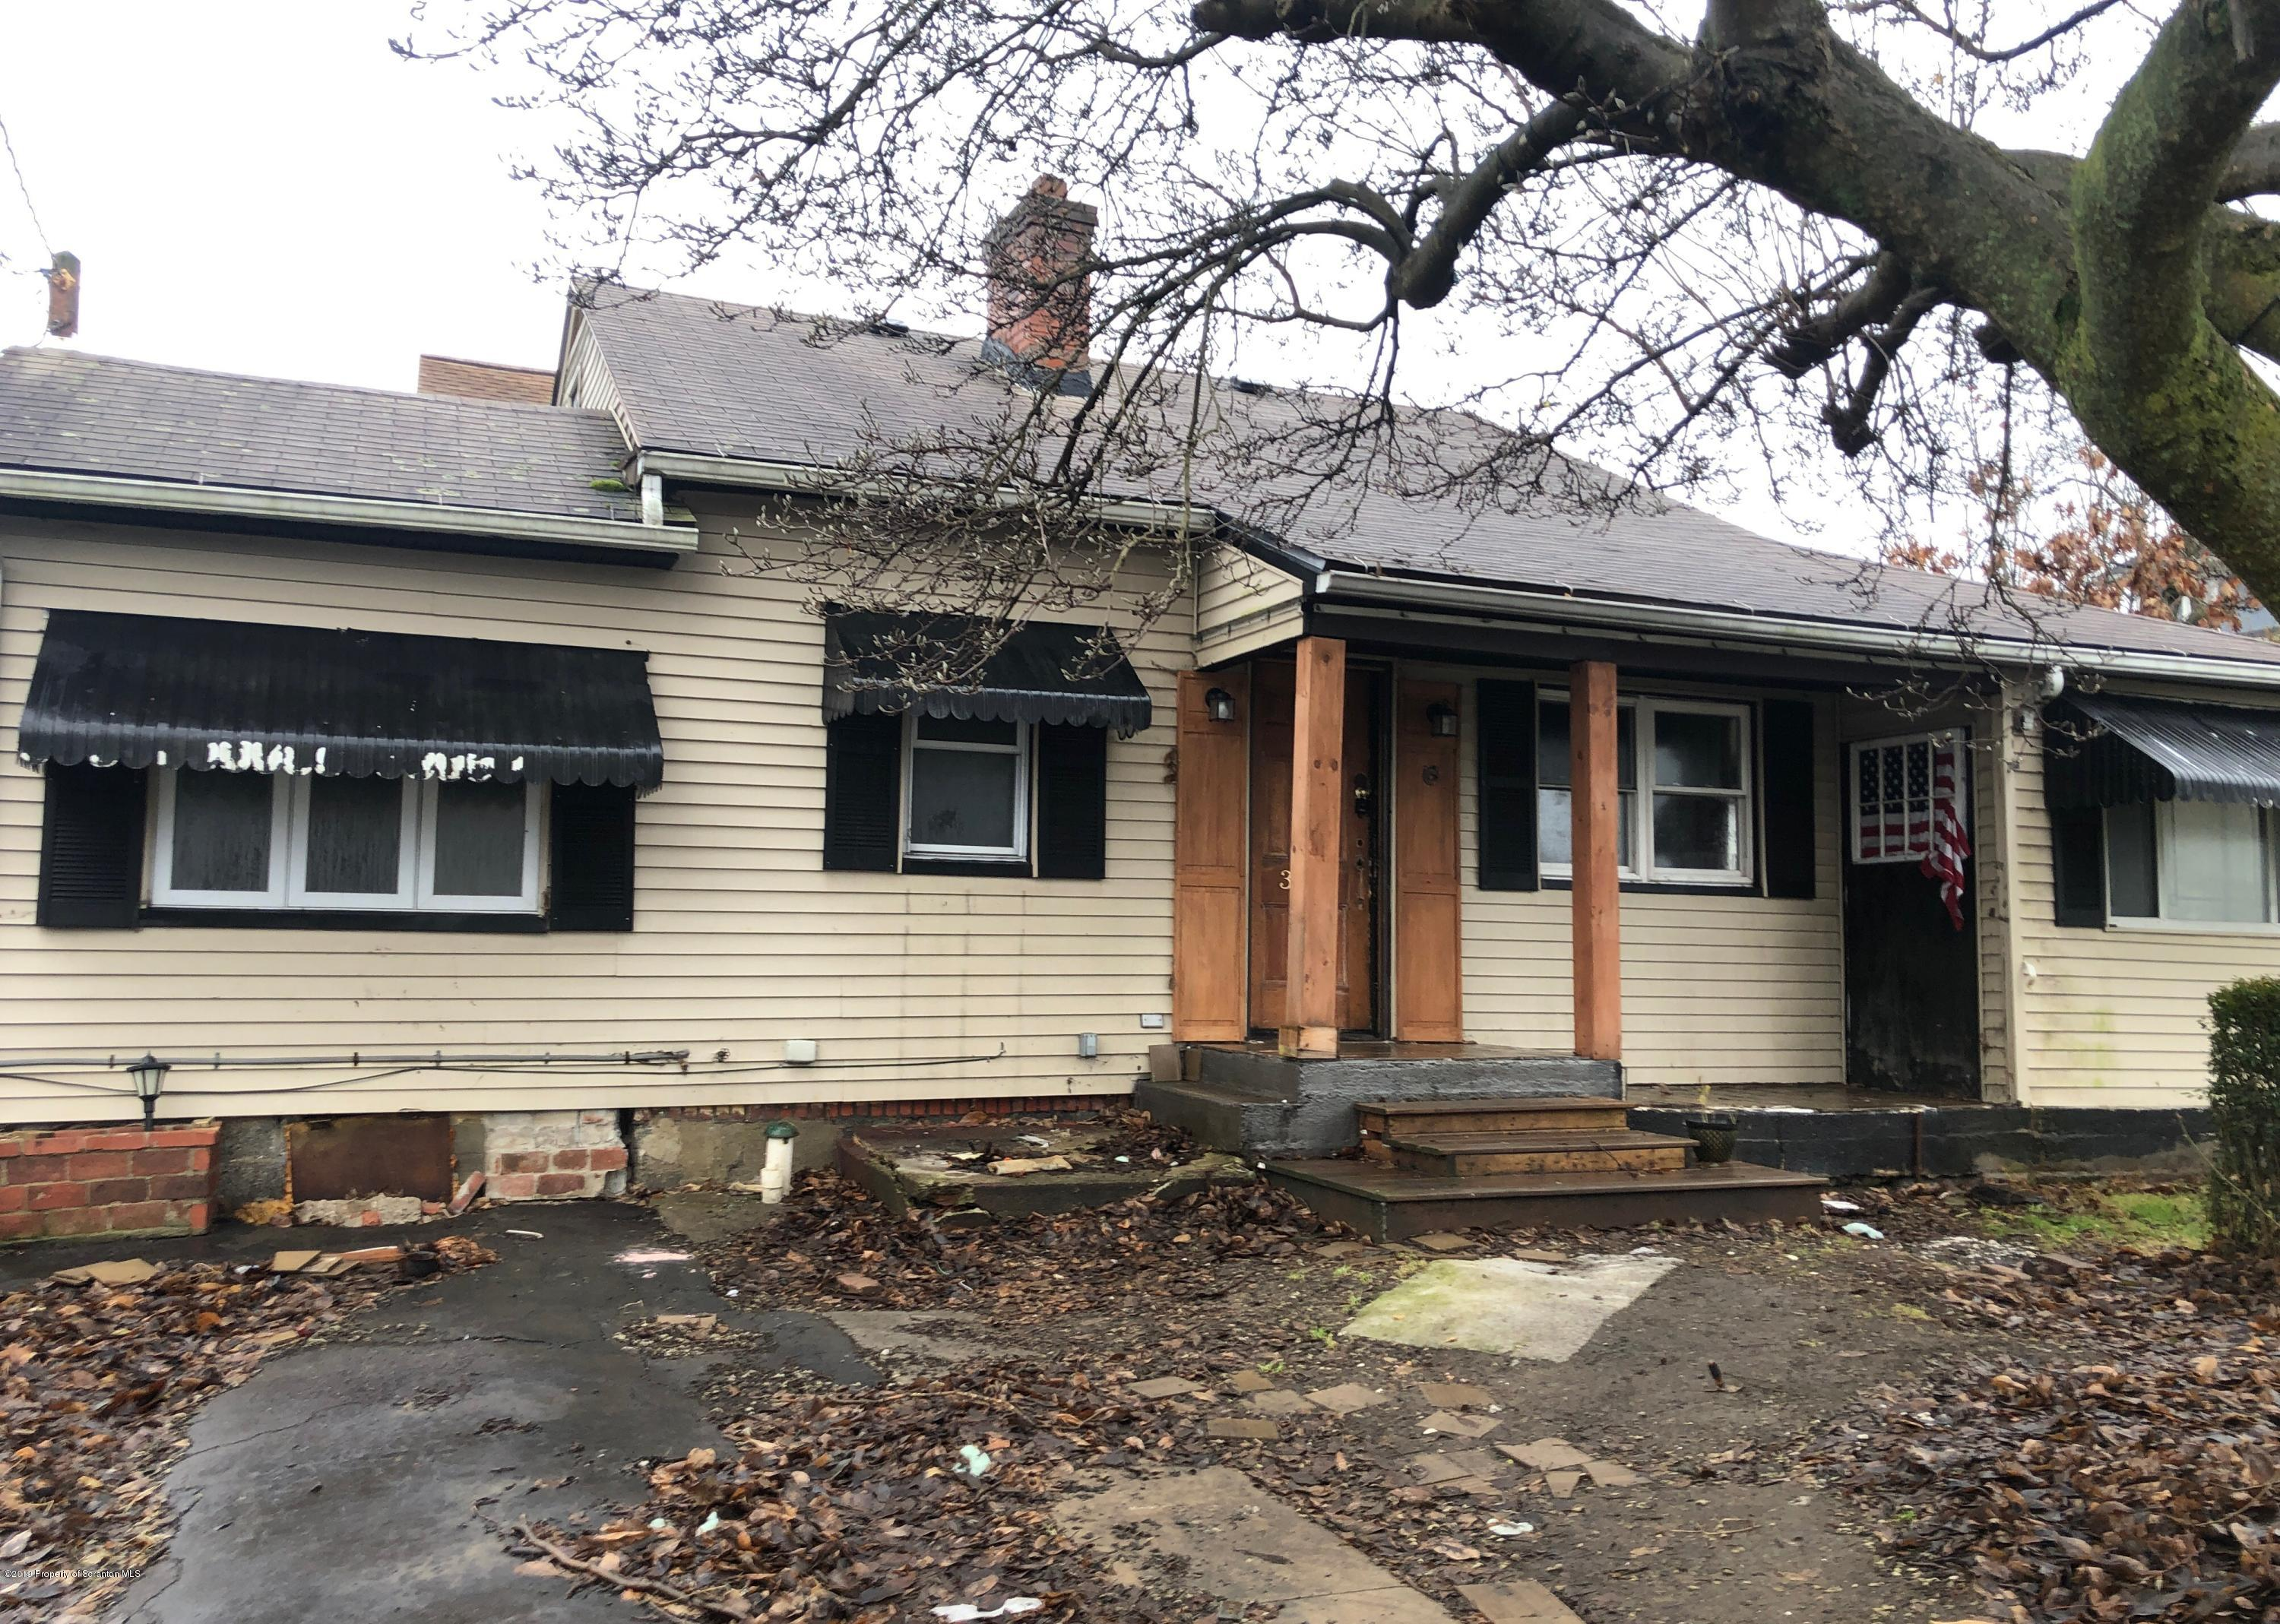 312 Haverly St, Throop, Pennsylvania 18512, 2 Bedrooms Bedrooms, 5 Rooms Rooms,1 BathroomBathrooms,Single Family,For Sale,Haverly,19-5673